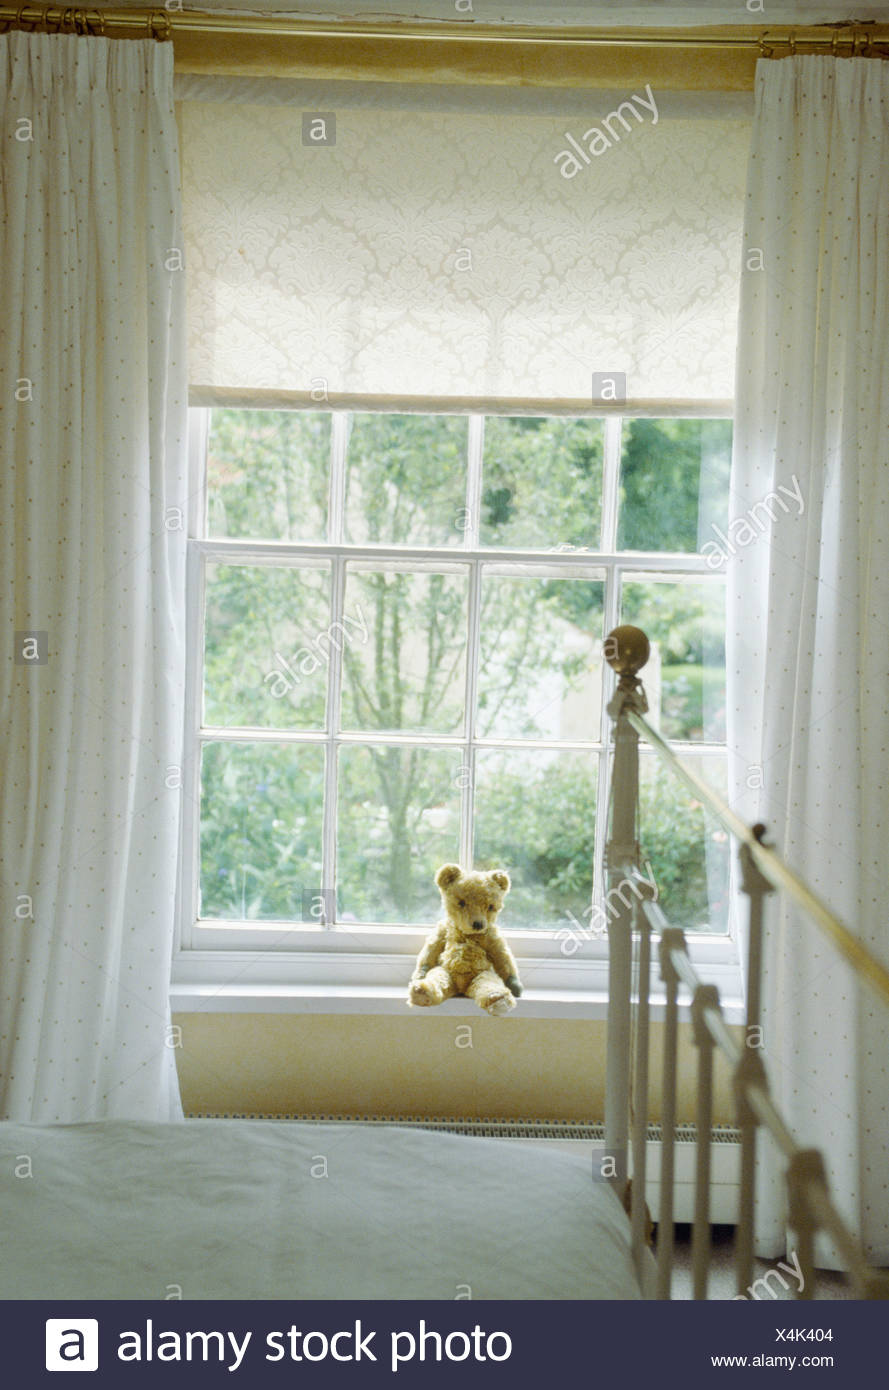 Blind Soft Furnishings Traditional Stockfotos & Blind Soft ...